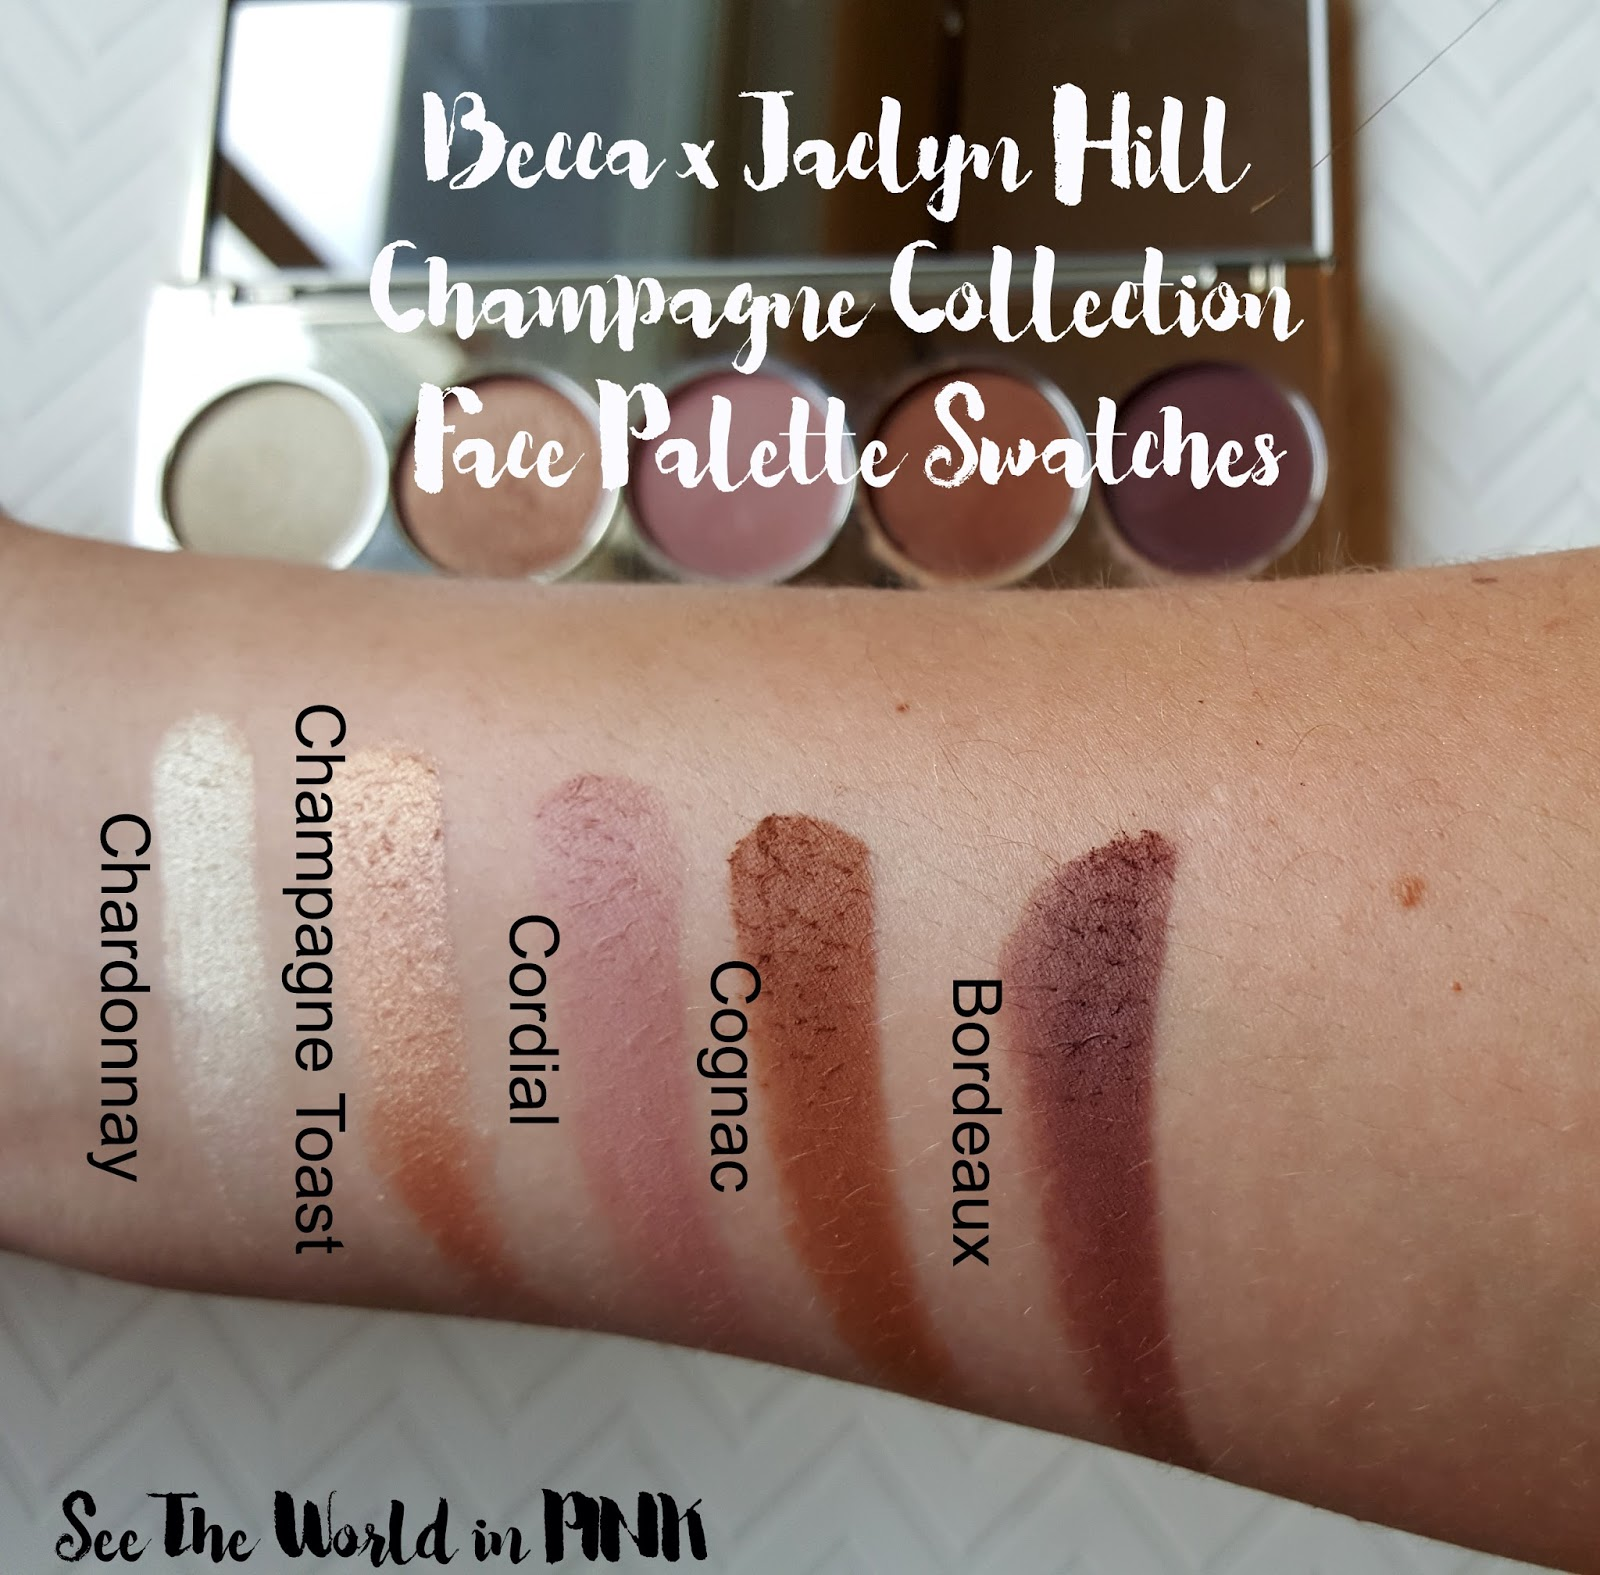 becca x jaclyn hill champagne glow collection eyeshadow palette review swatches